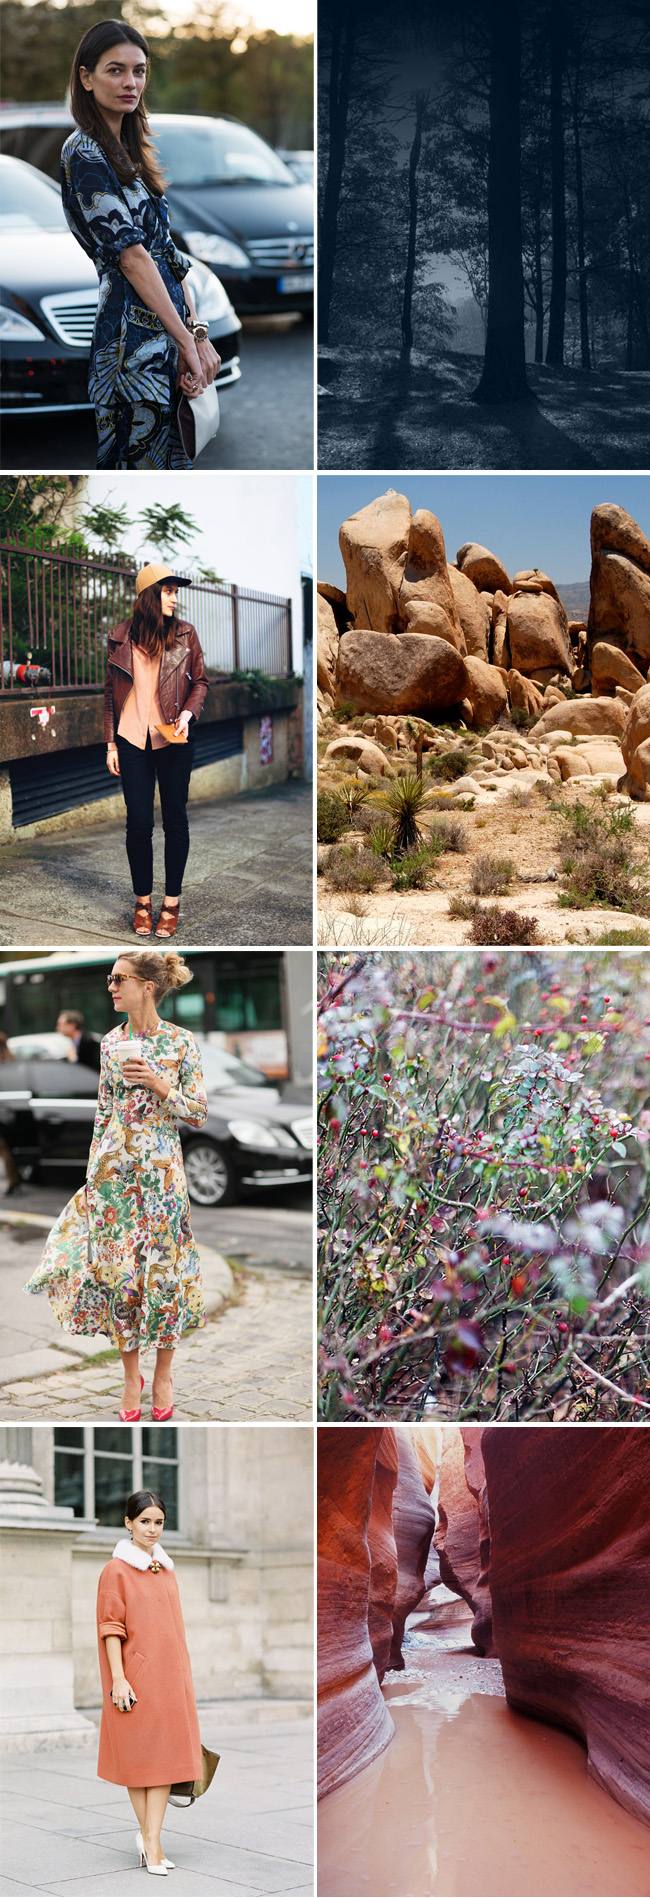 outfits and landscapes 4